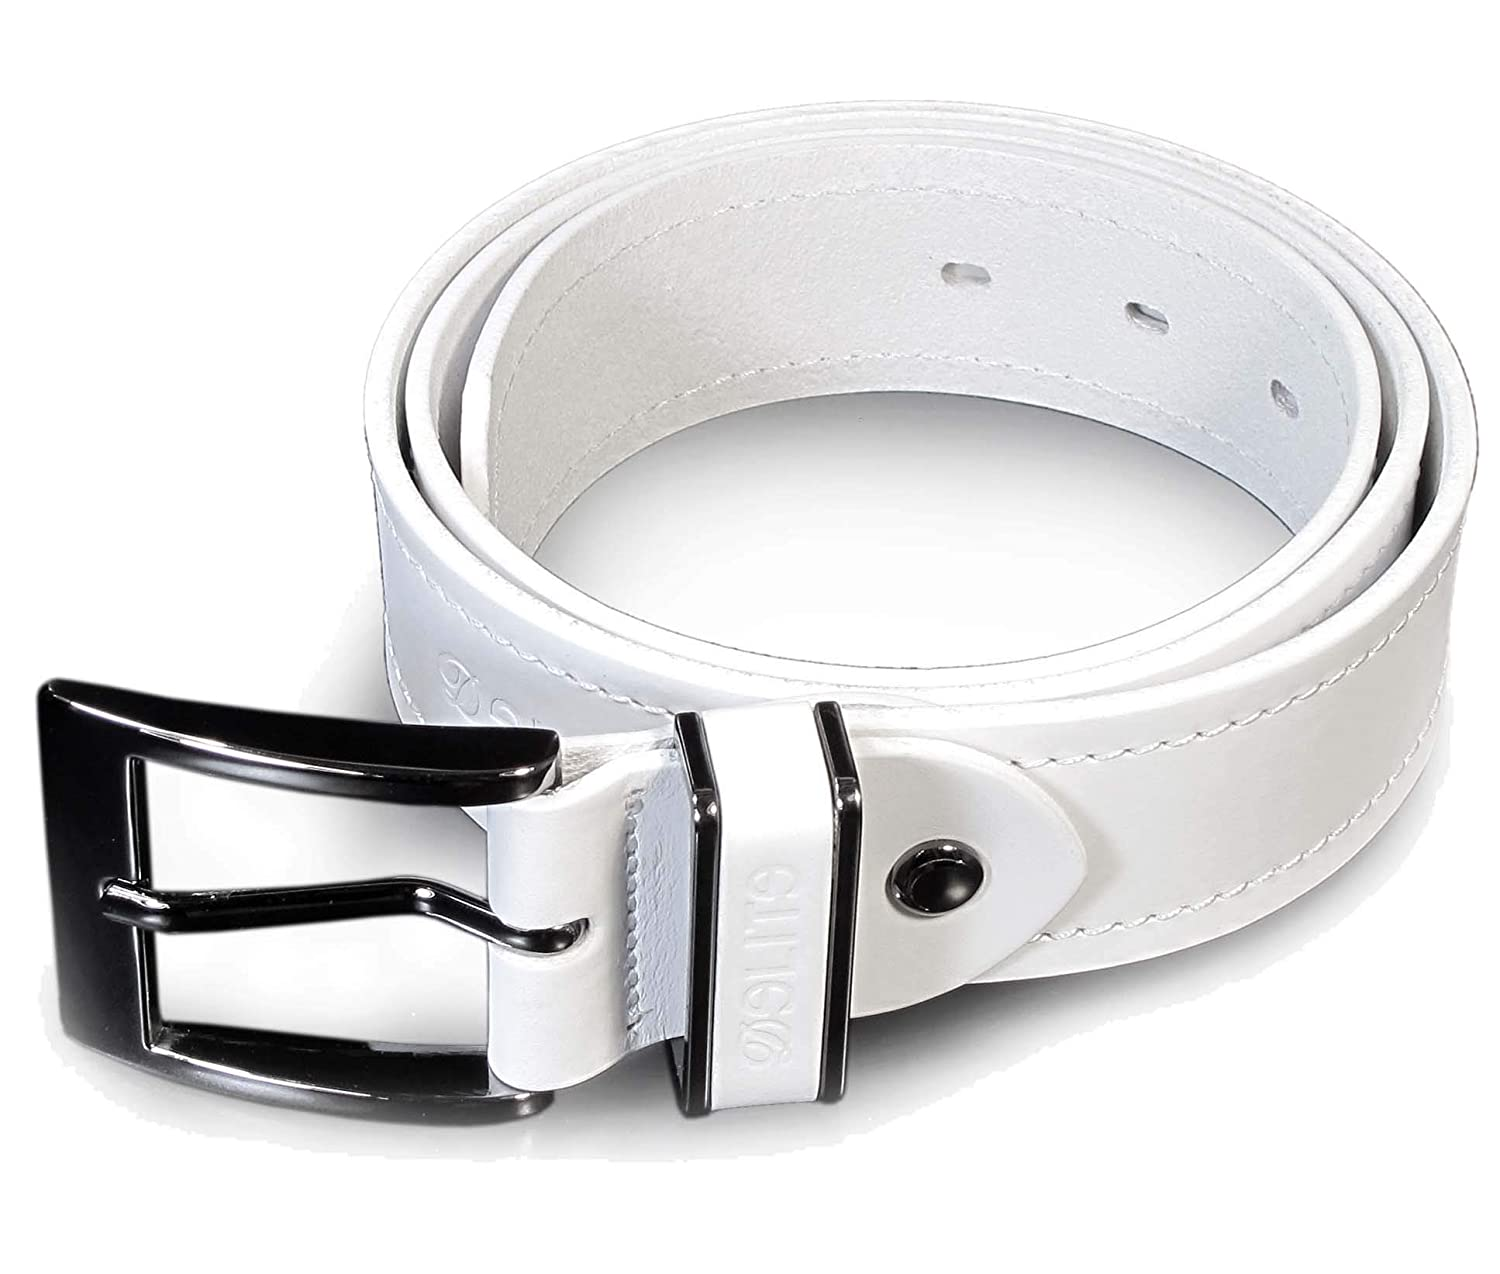 CM0 Mens Real Genuine Leather White Belt 1.5 Wide S-XL Thick Long Casual Jeans